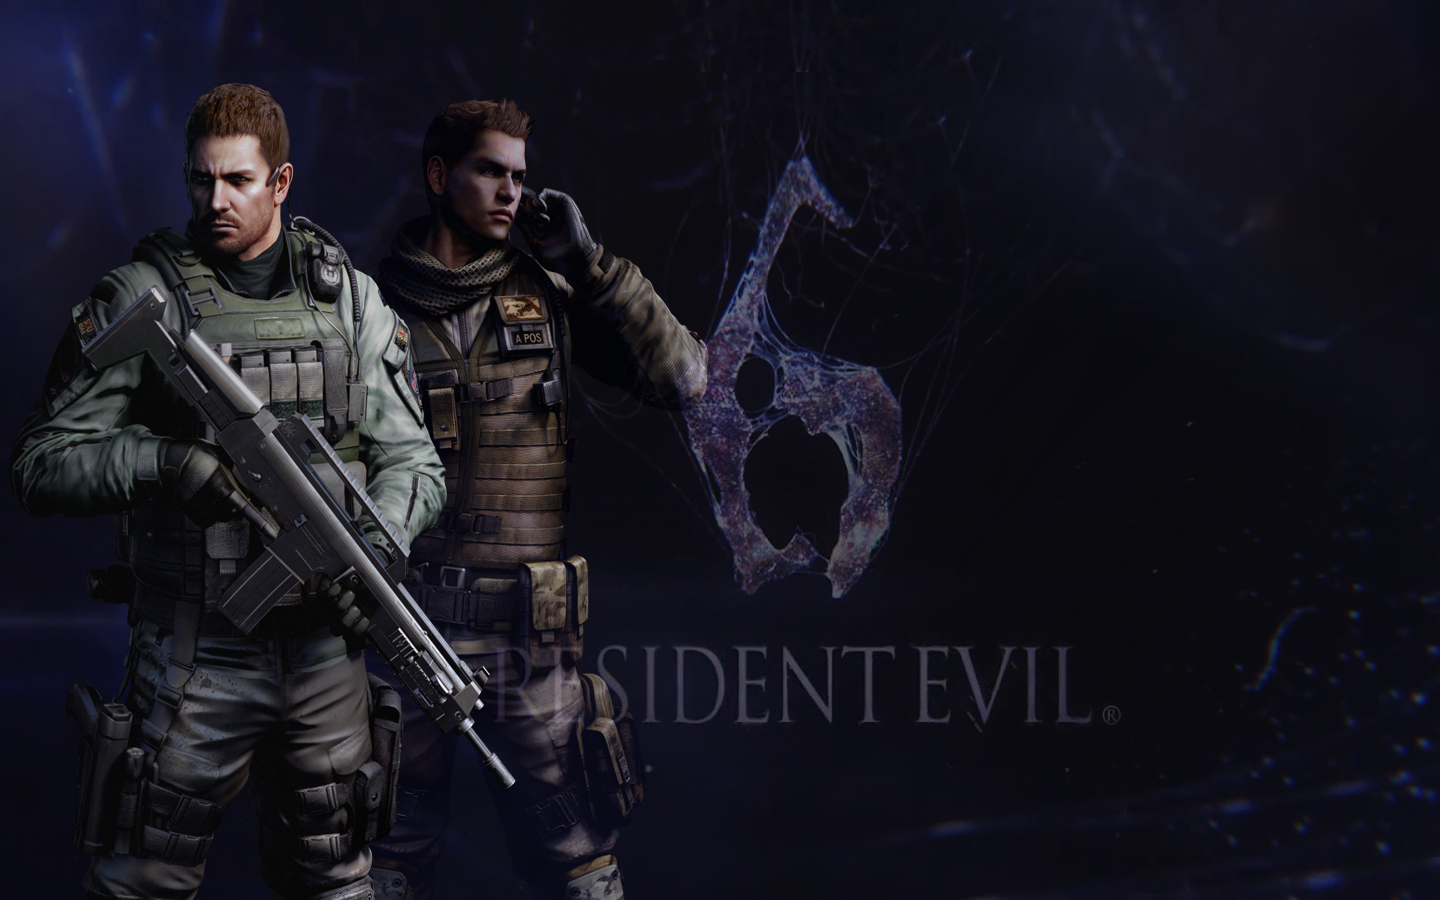 Resident evil 6 Wallpaper by pvlimota 1440x900